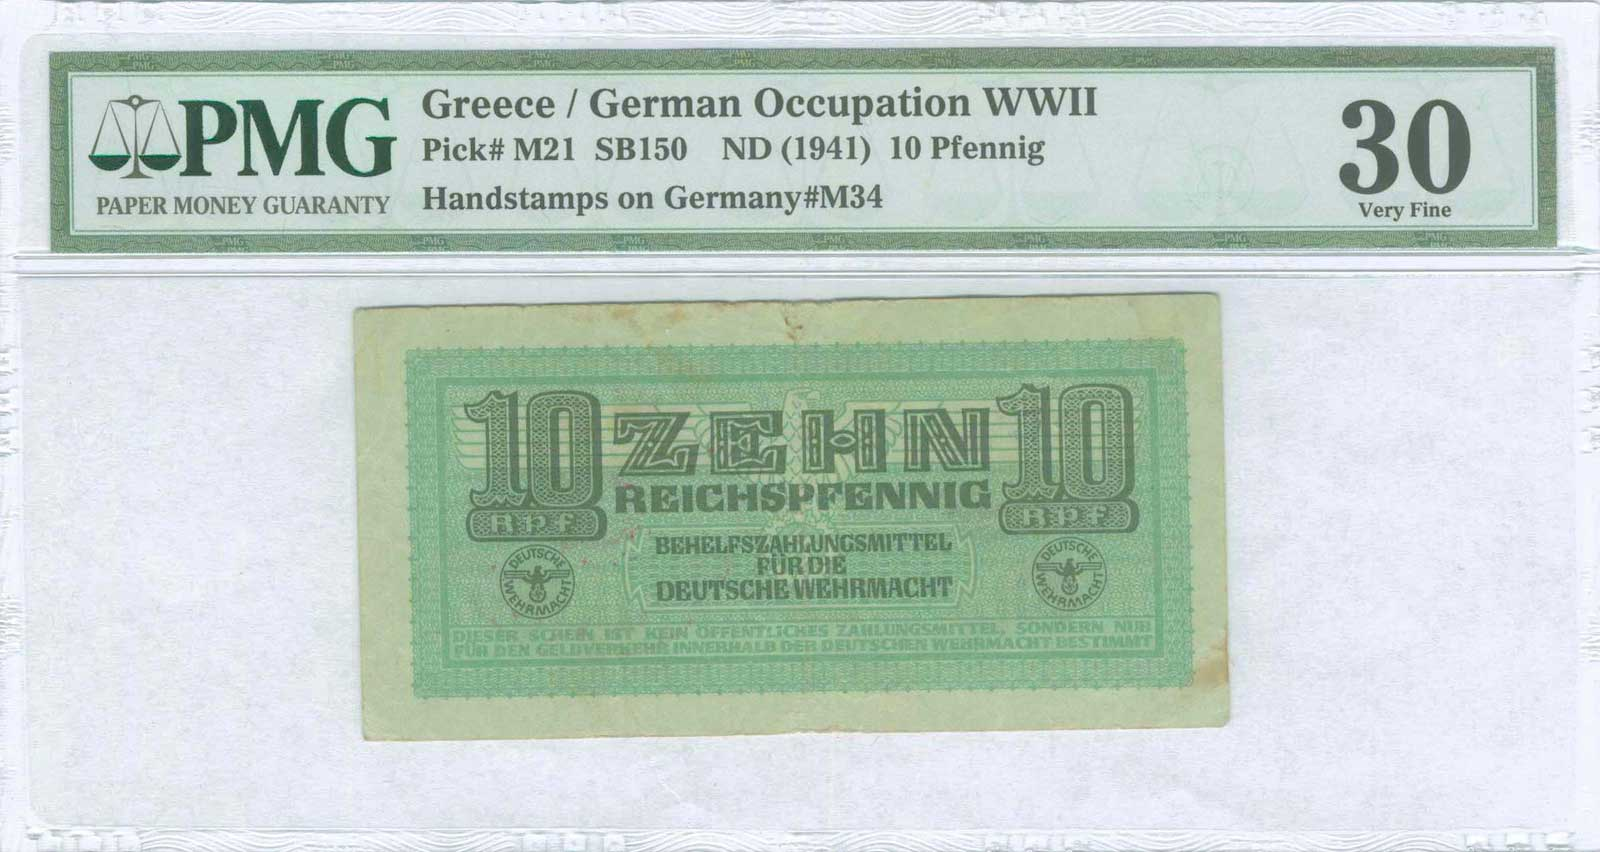 Lot 9402 - GREECE-  PAPER MONEY - BANKNOTES german occupation wwii -  A. Karamitsos Public & LIVE Bid Auction 610 Coins, Medals & Banknotes